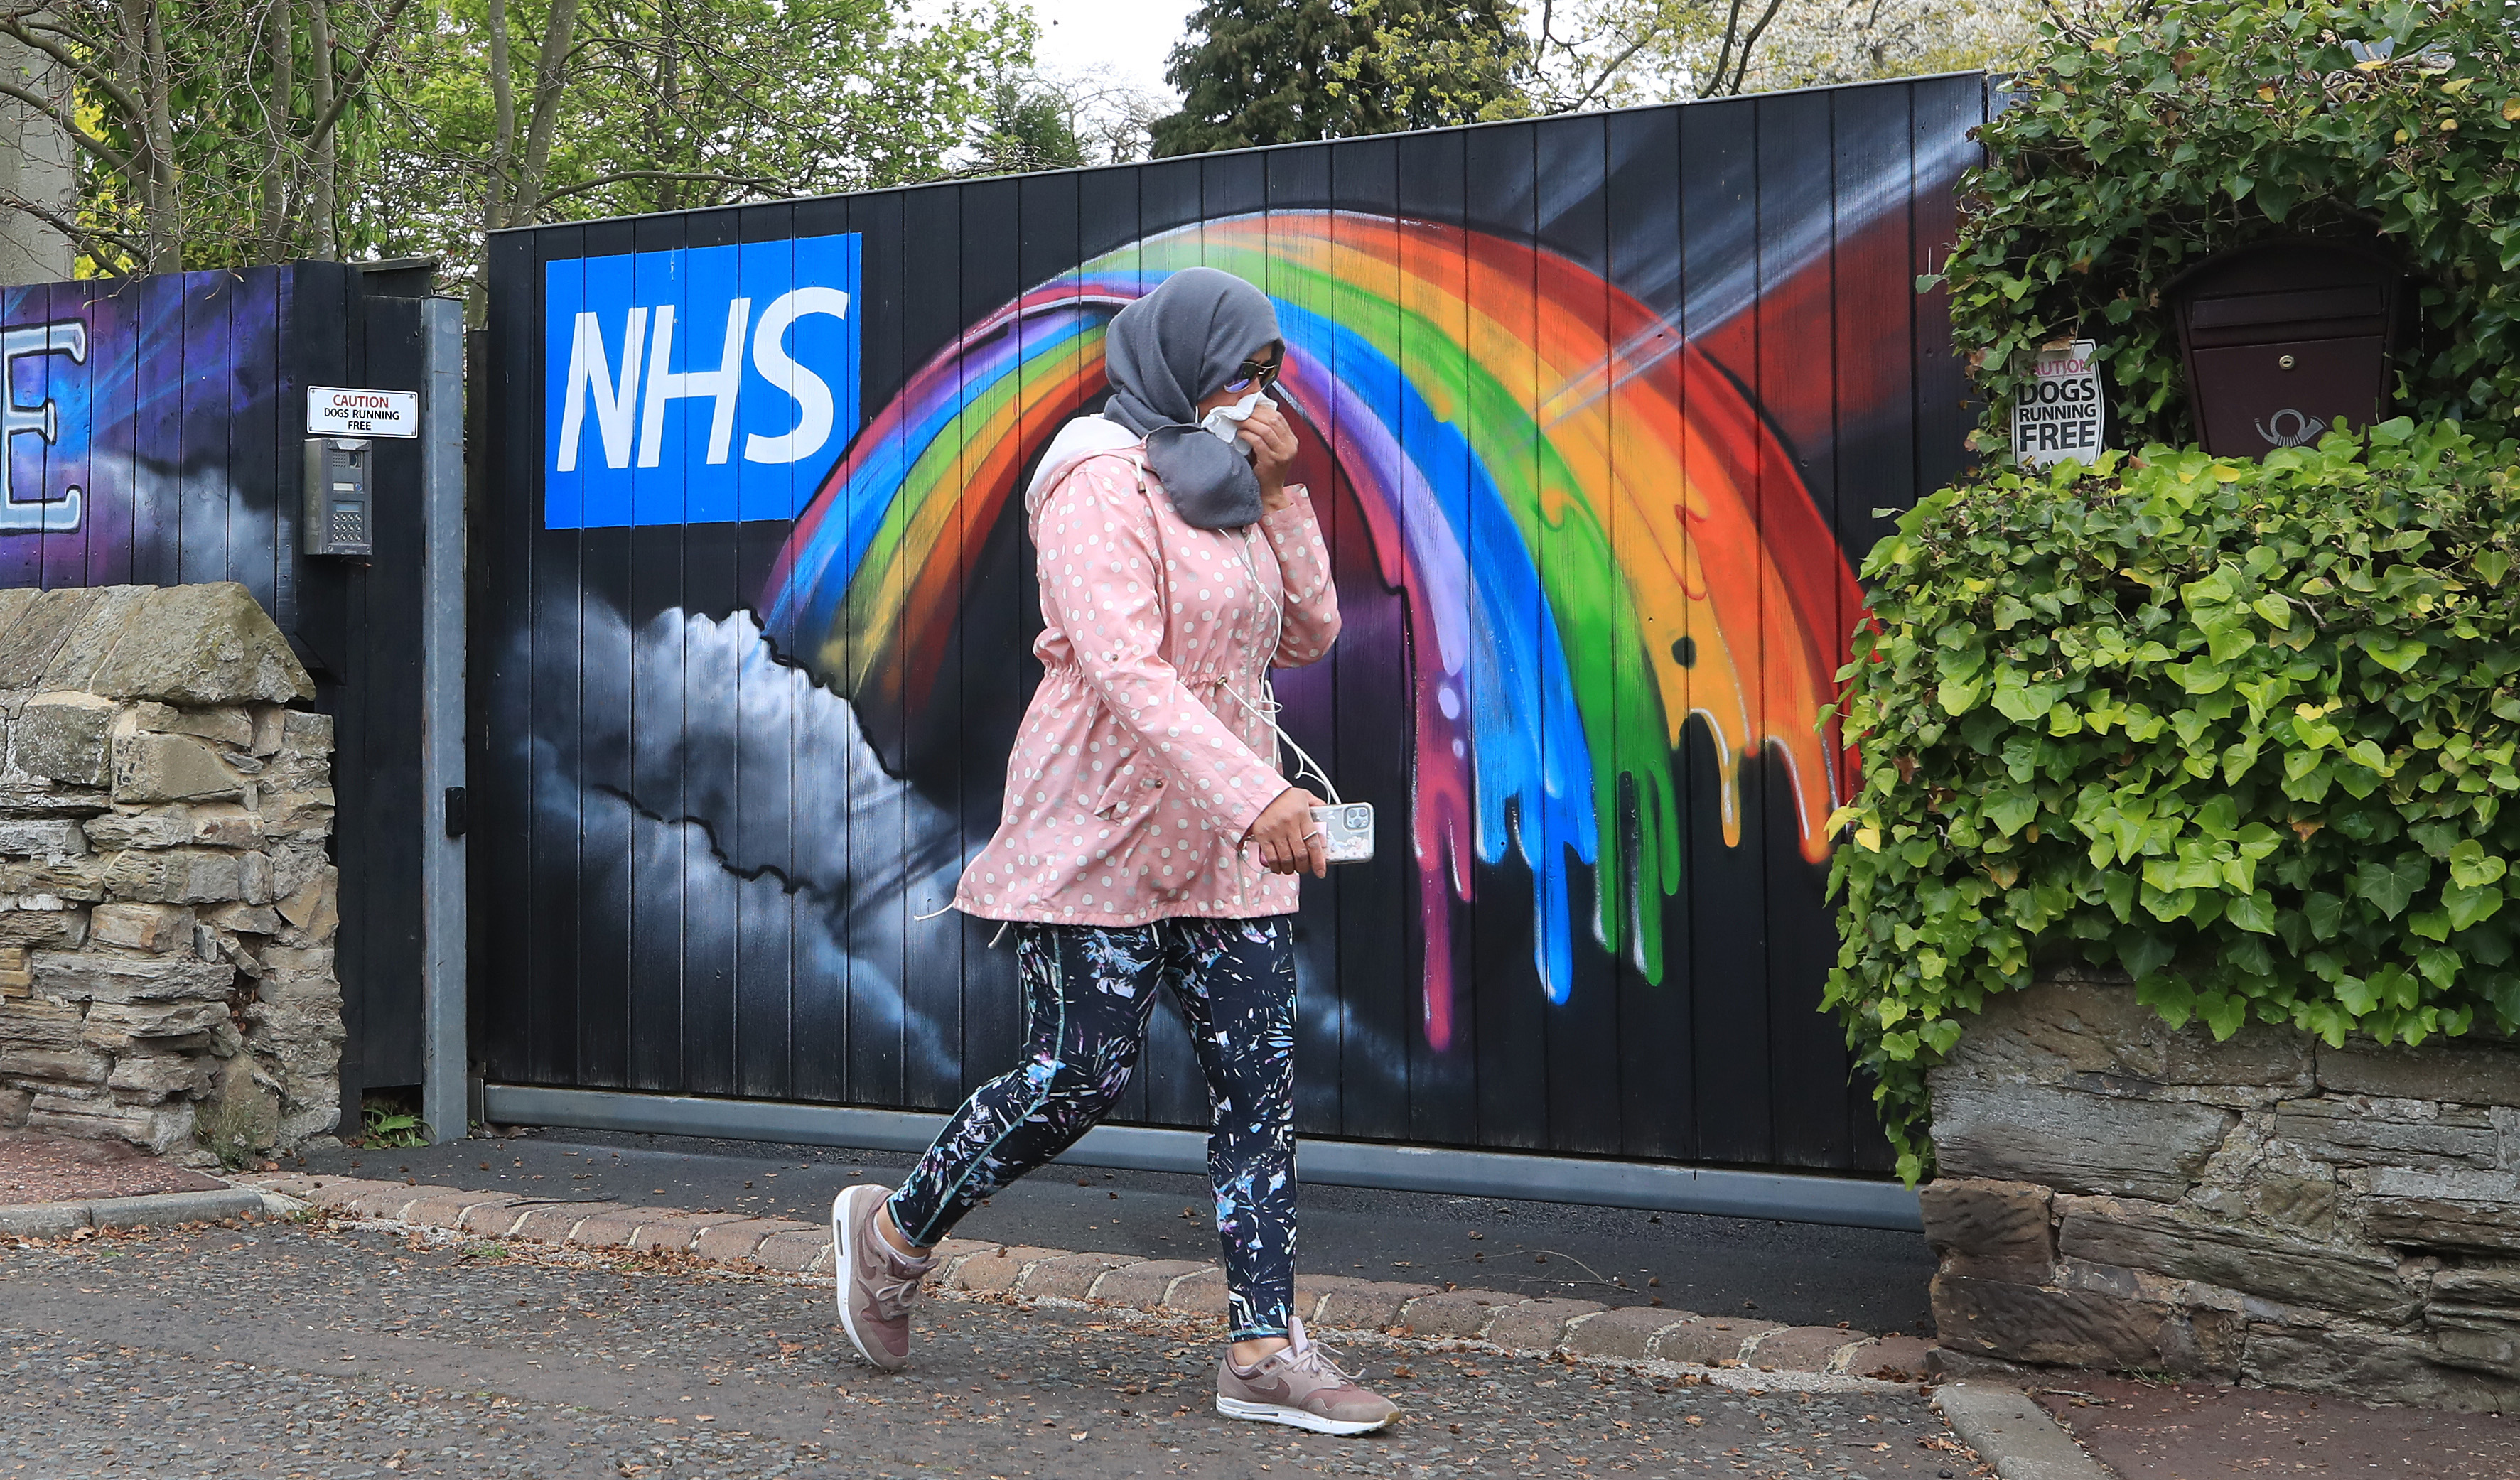 A woman walks past rainbow NHS graffiti on one of the gates to a mansion in Woolsingham in Newcastle as the UK continues in lockdown to help curb the spread of the coronavirus.